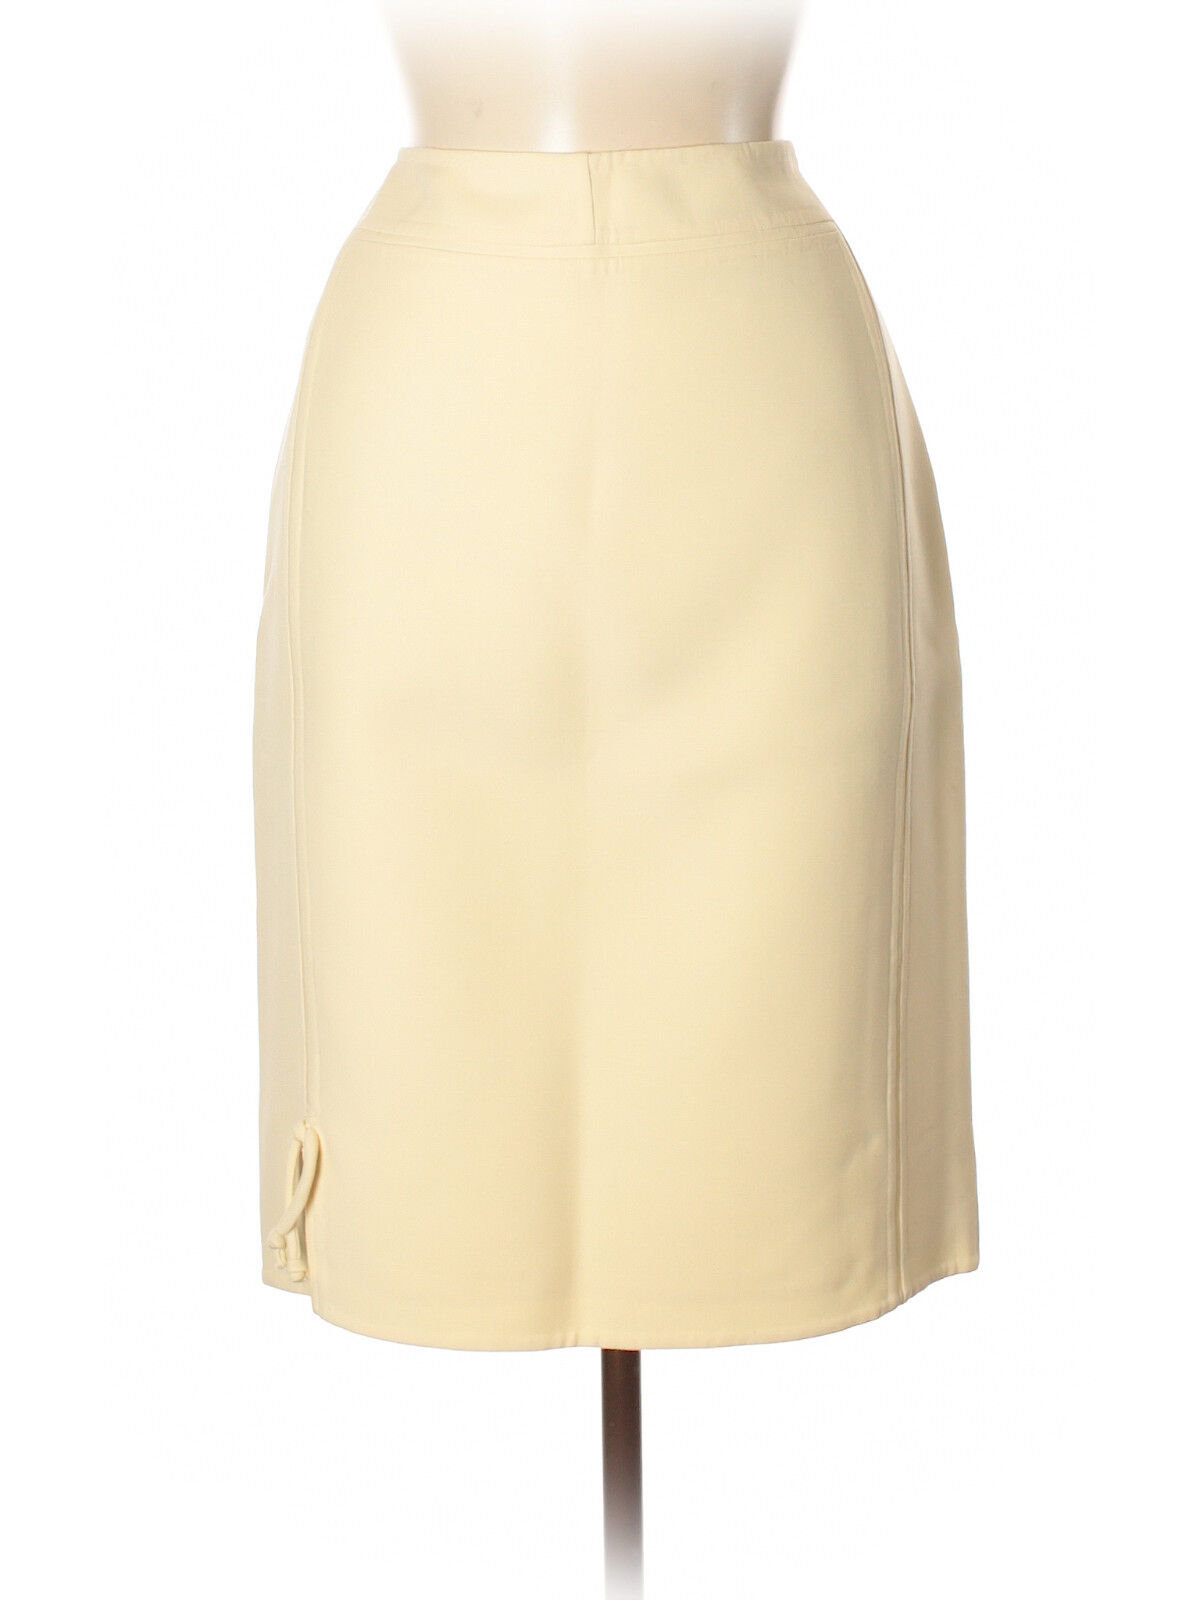 Chado Ralph Rucci Cream Pencil Skirt, Size 8, NWT   1,800